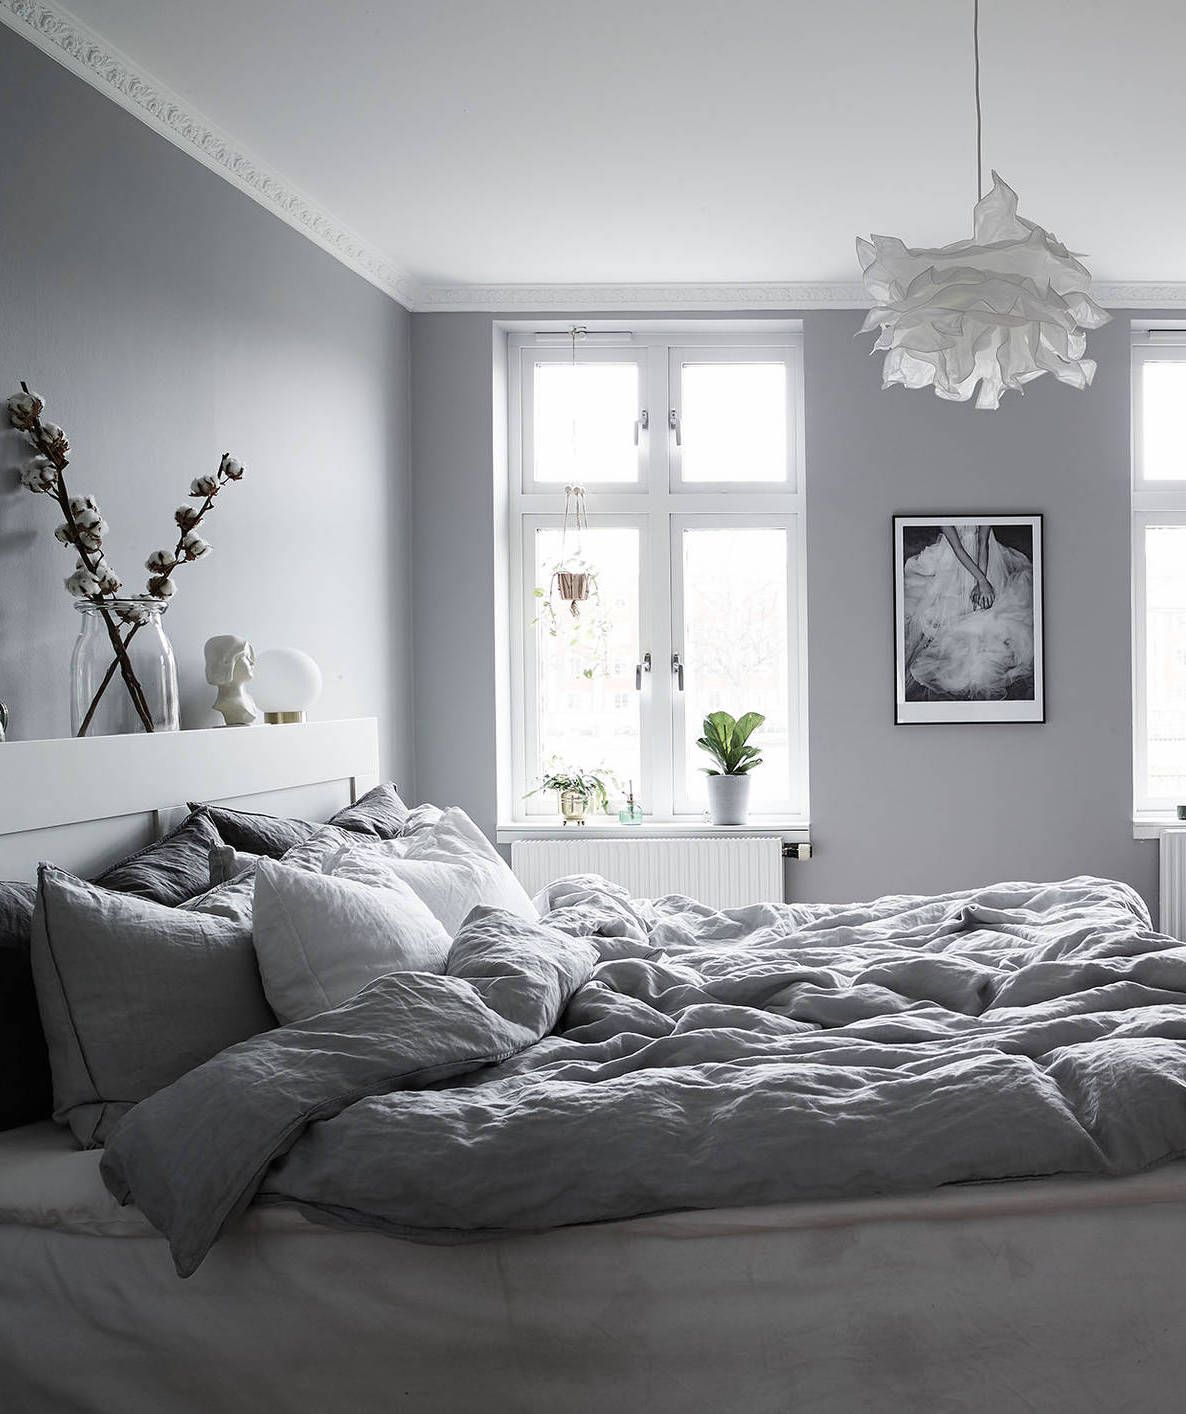 Soft grey home b e d r o o m pinterest schlafzimmer for Innengestaltung wohnung